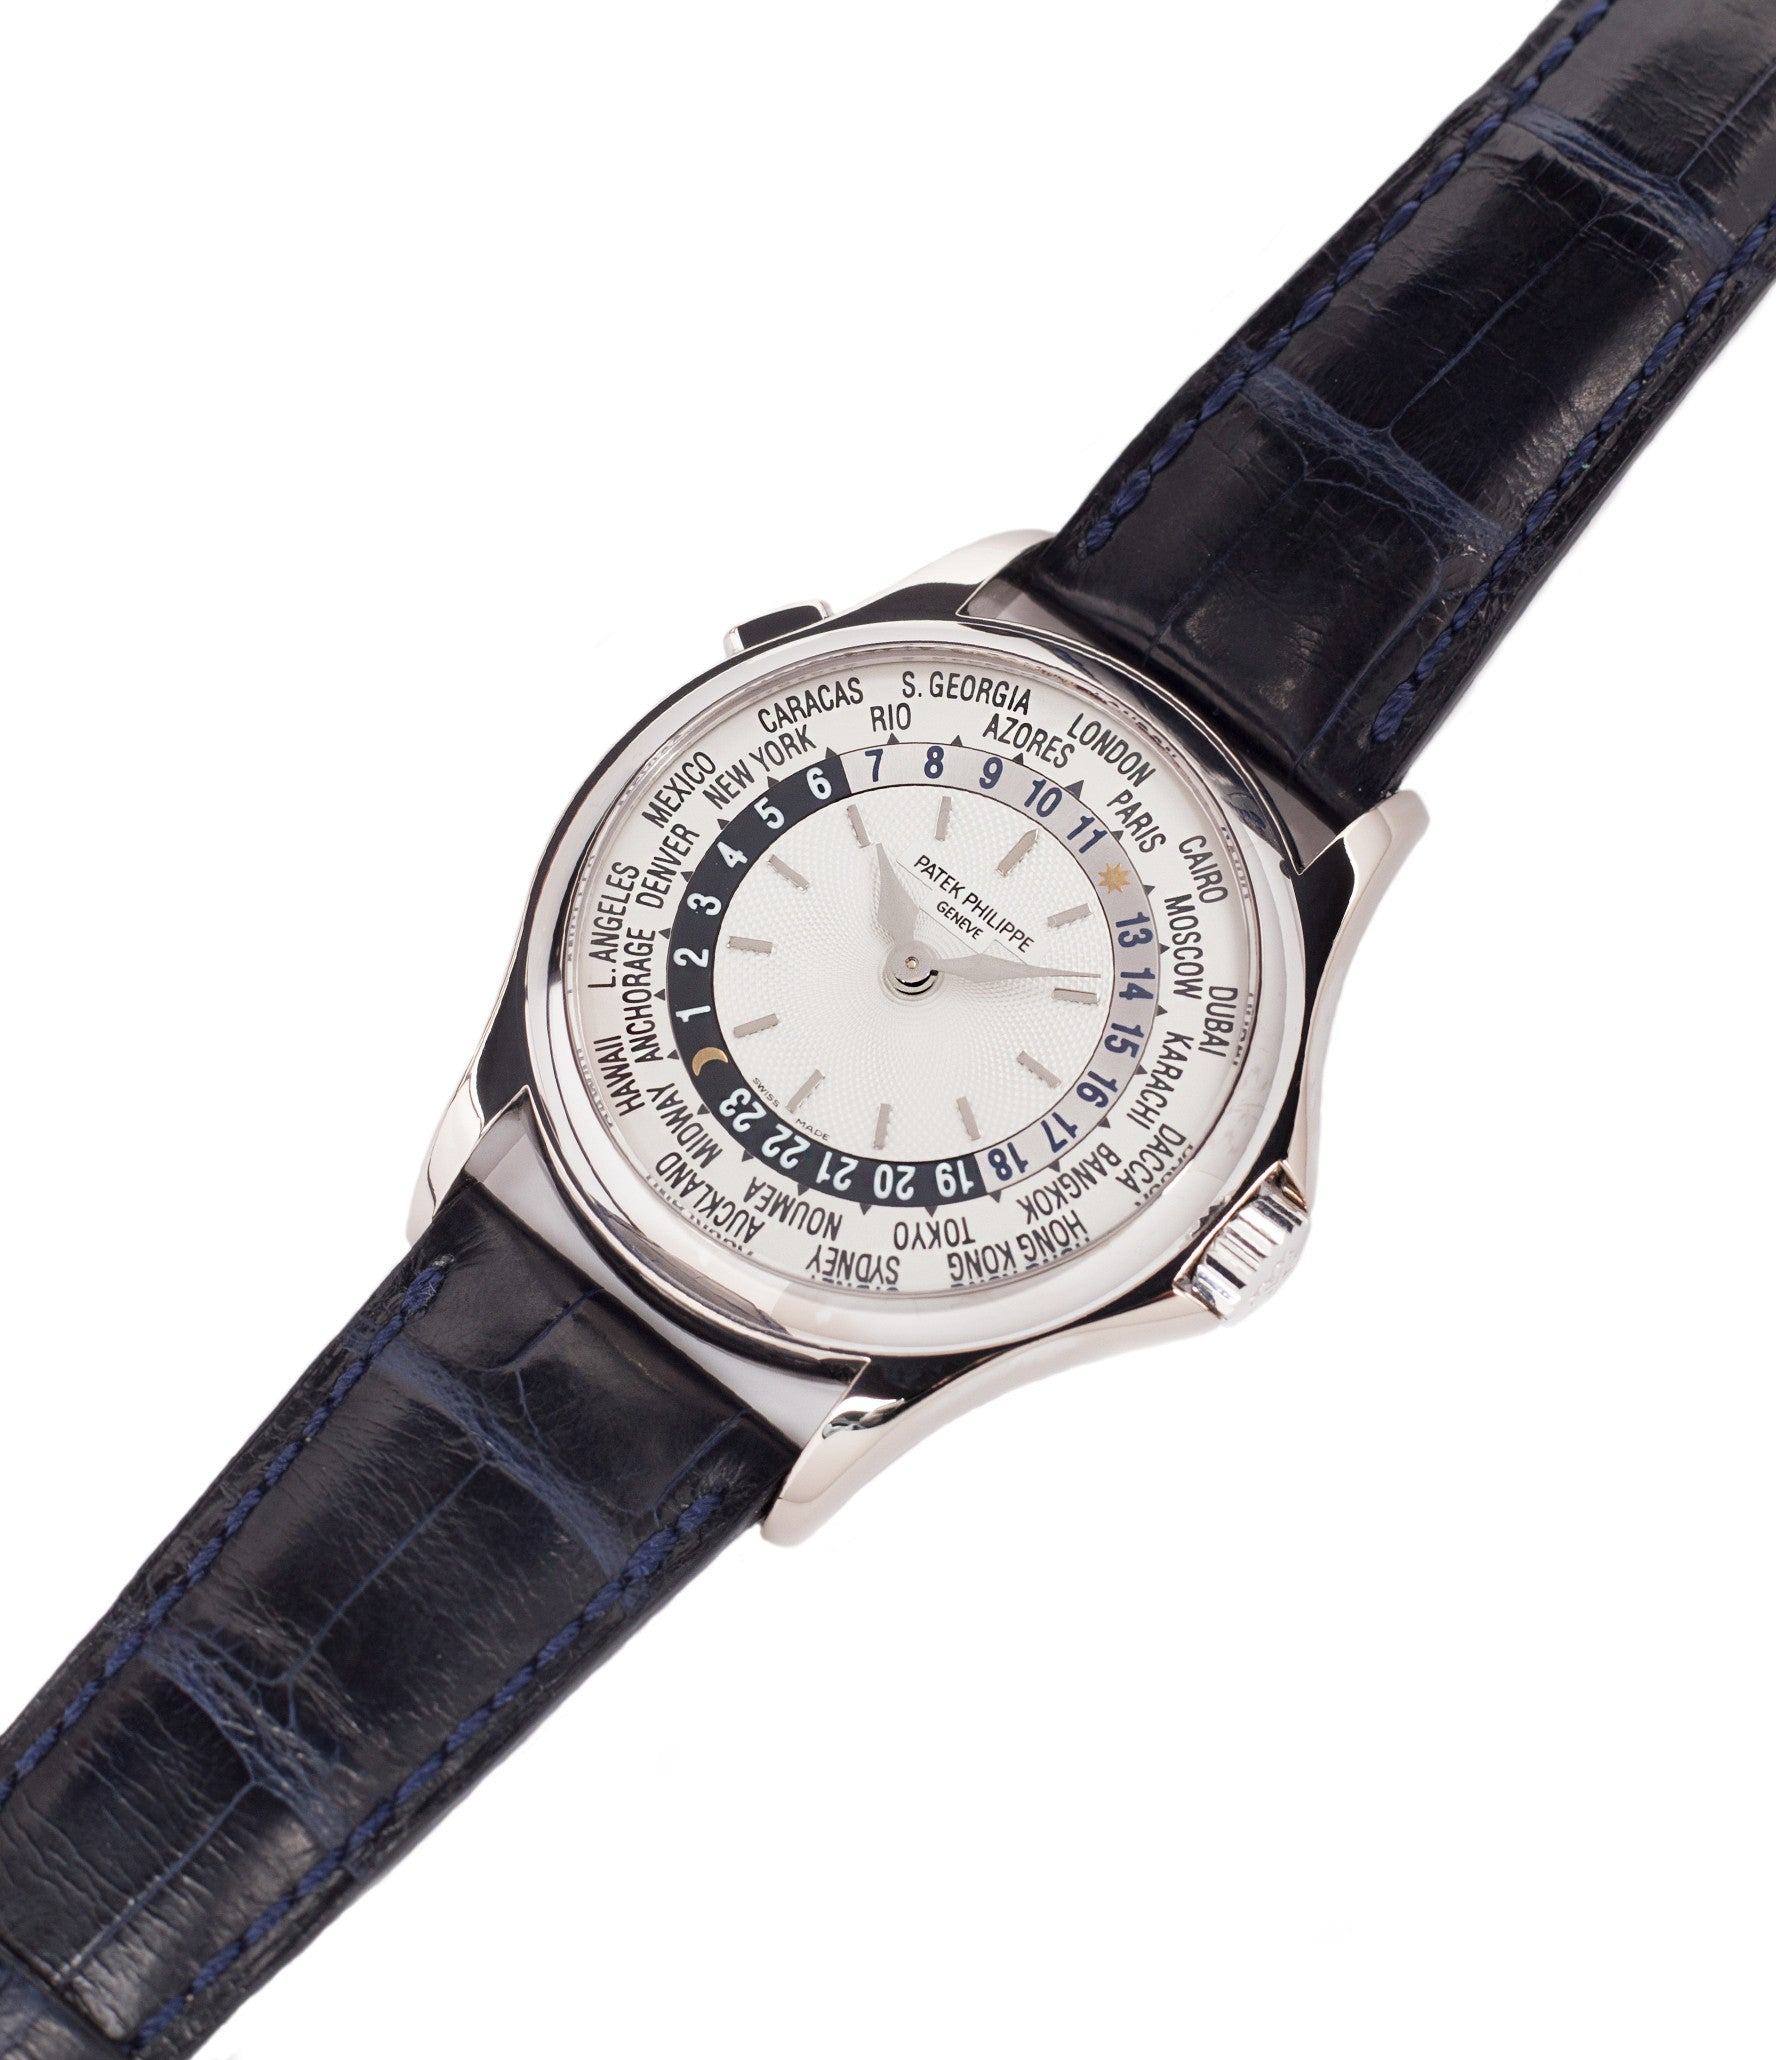 for sale preowned Patek Philippe 5110G-001 white gold World-timer luxury dress watch online for sale at A Collected Man London specialist preowned luxury watches